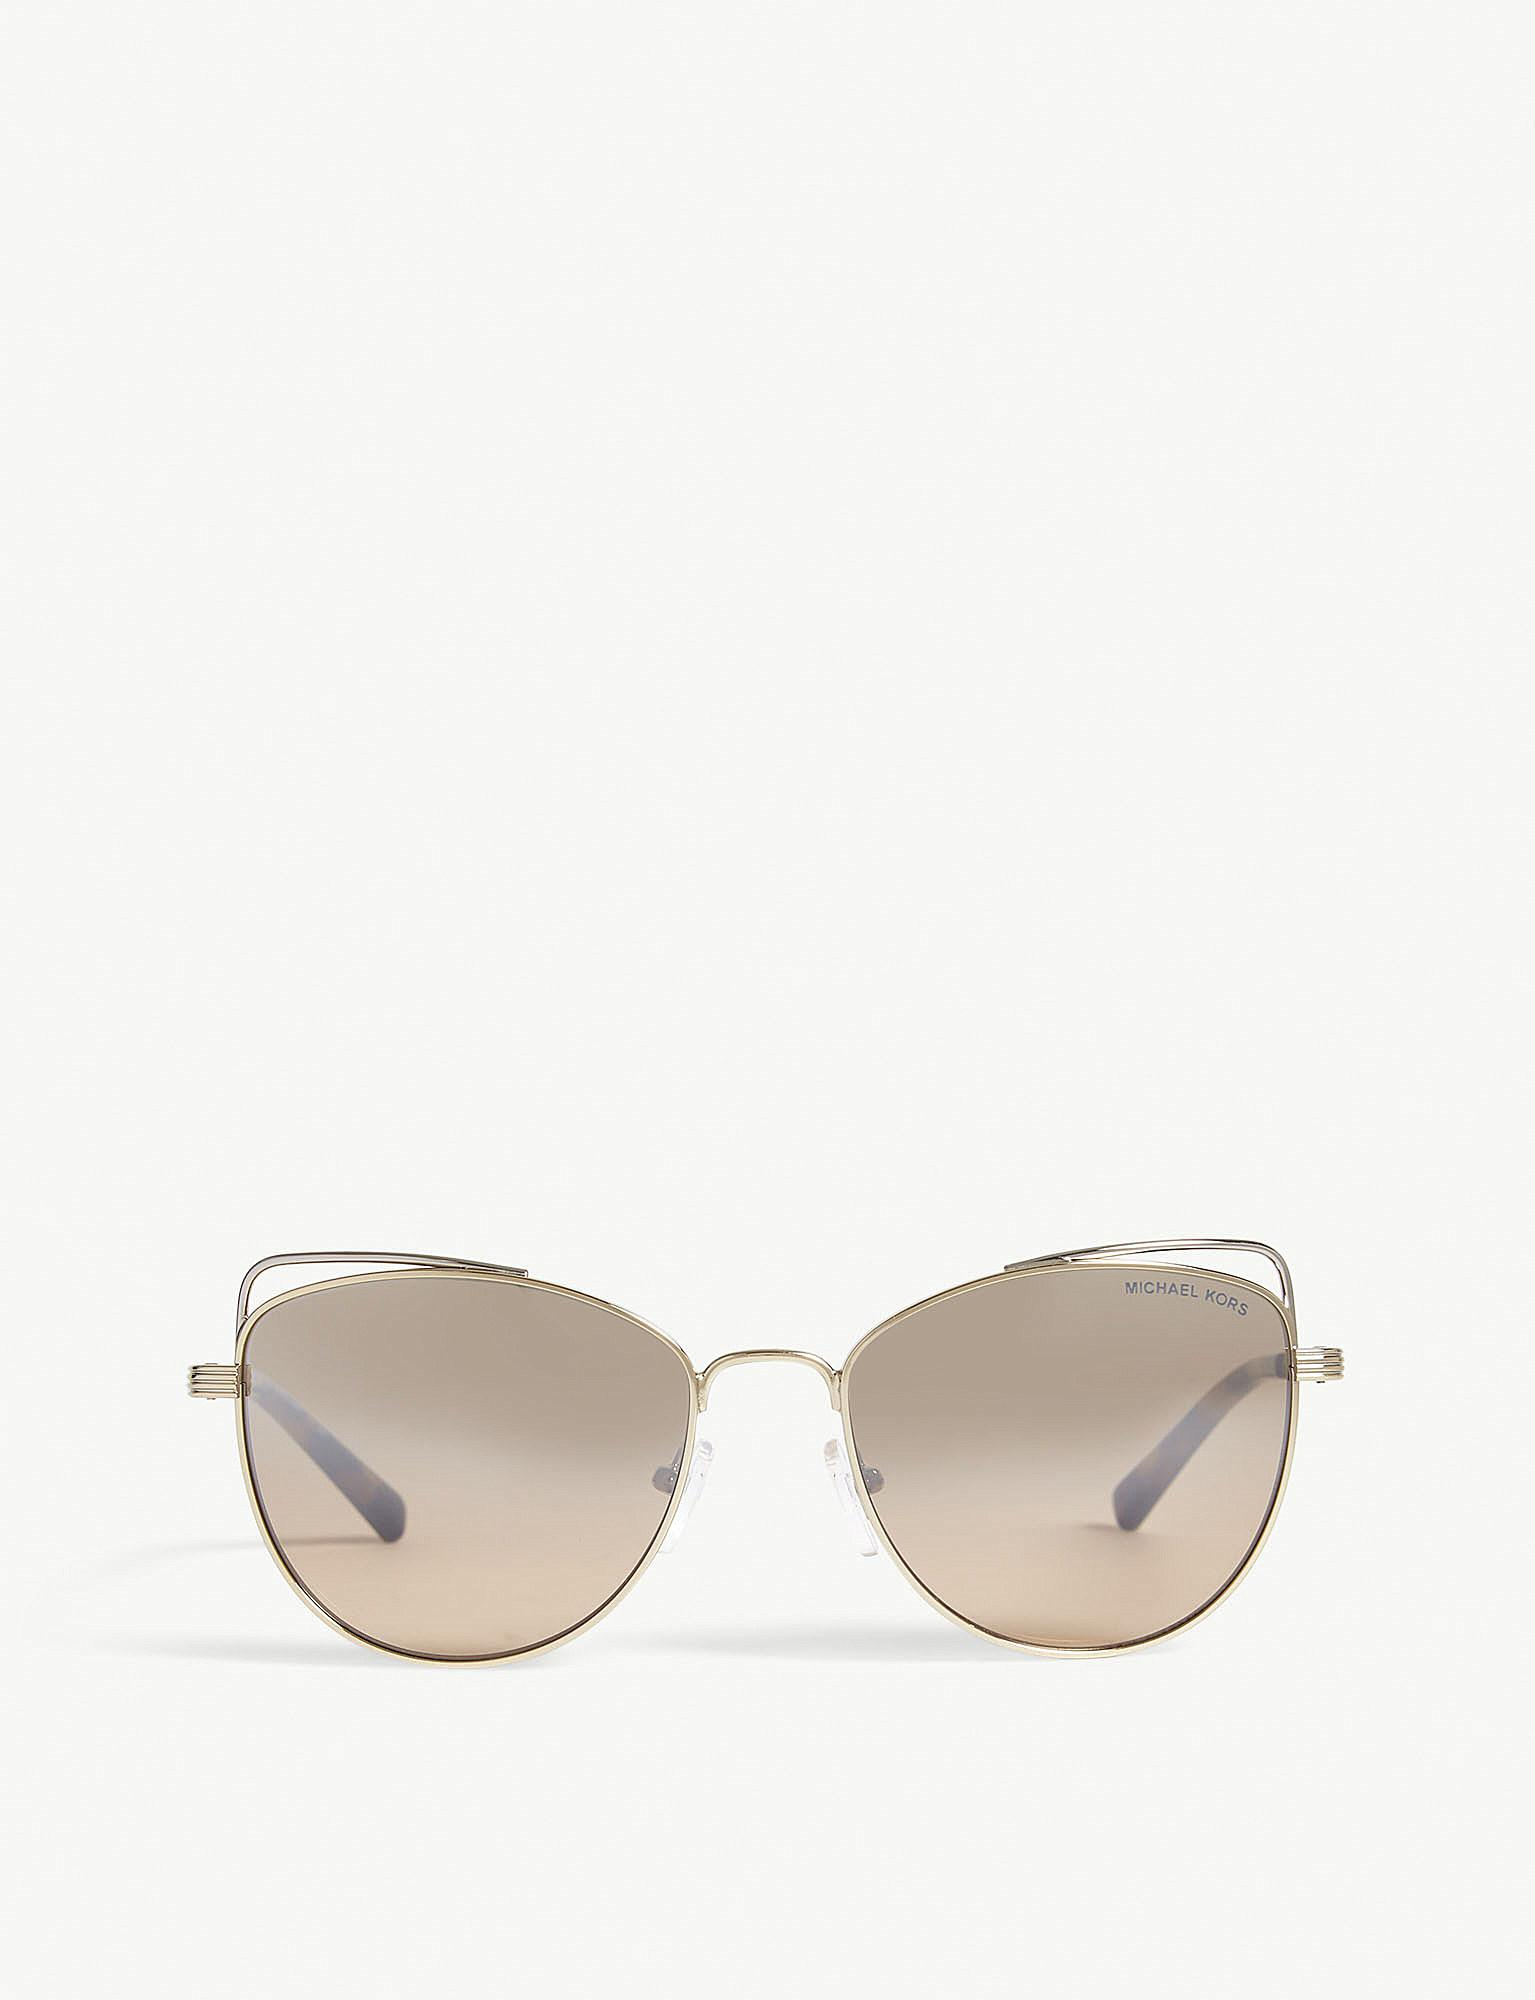 fa70af3f47b Michael Kors - Metallic Light Gold St. Lucia Cat s Eye Sunglasses Mk1035 -  Lyst. View fullscreen